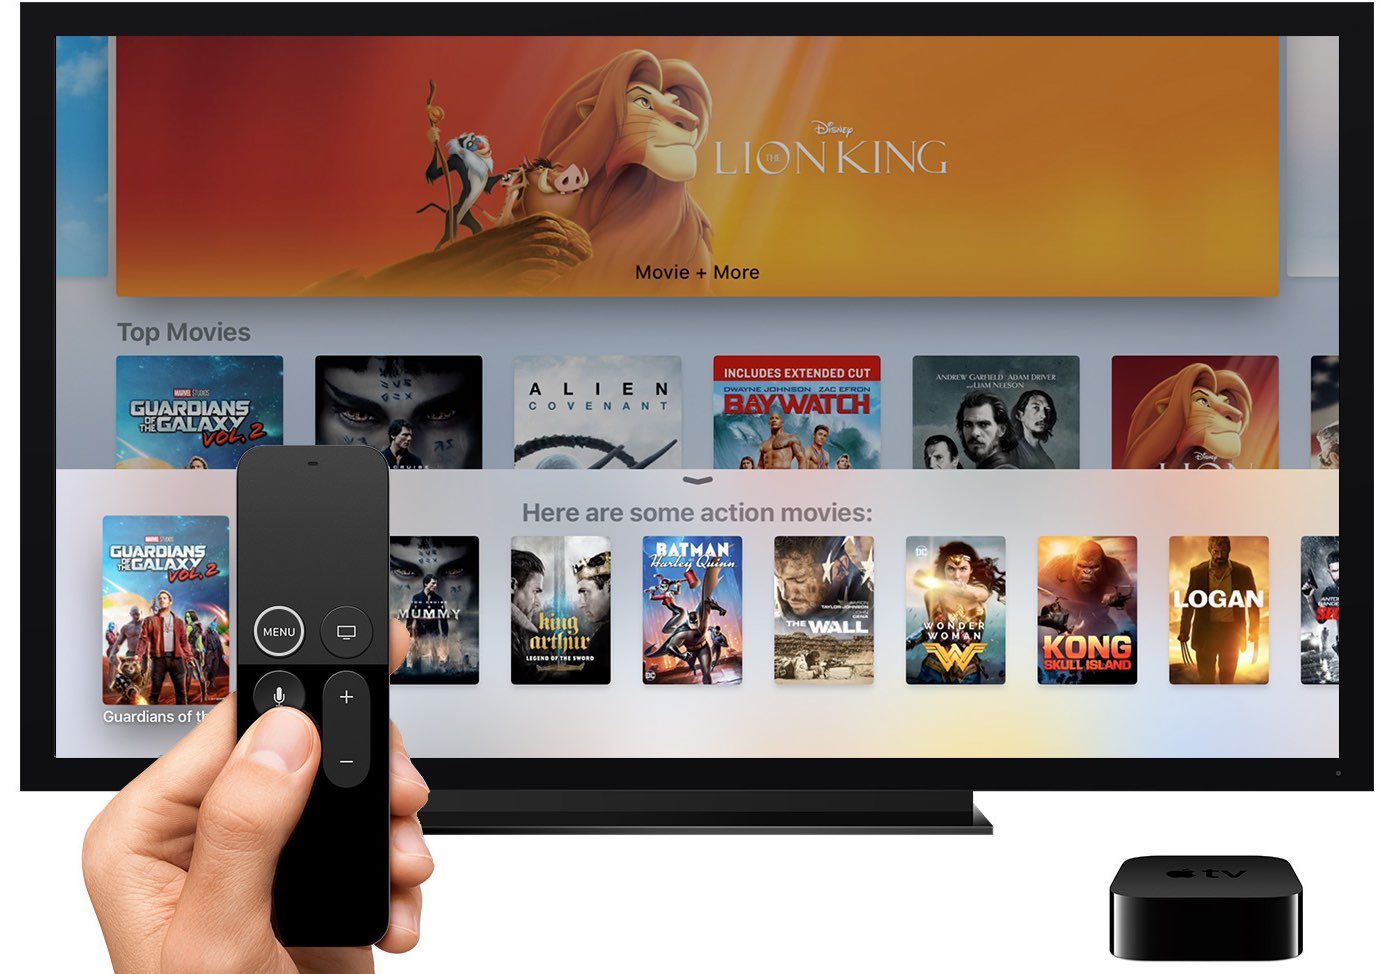 A screenshot showing invoking Siri on an Apple TV with a press of the Siri button